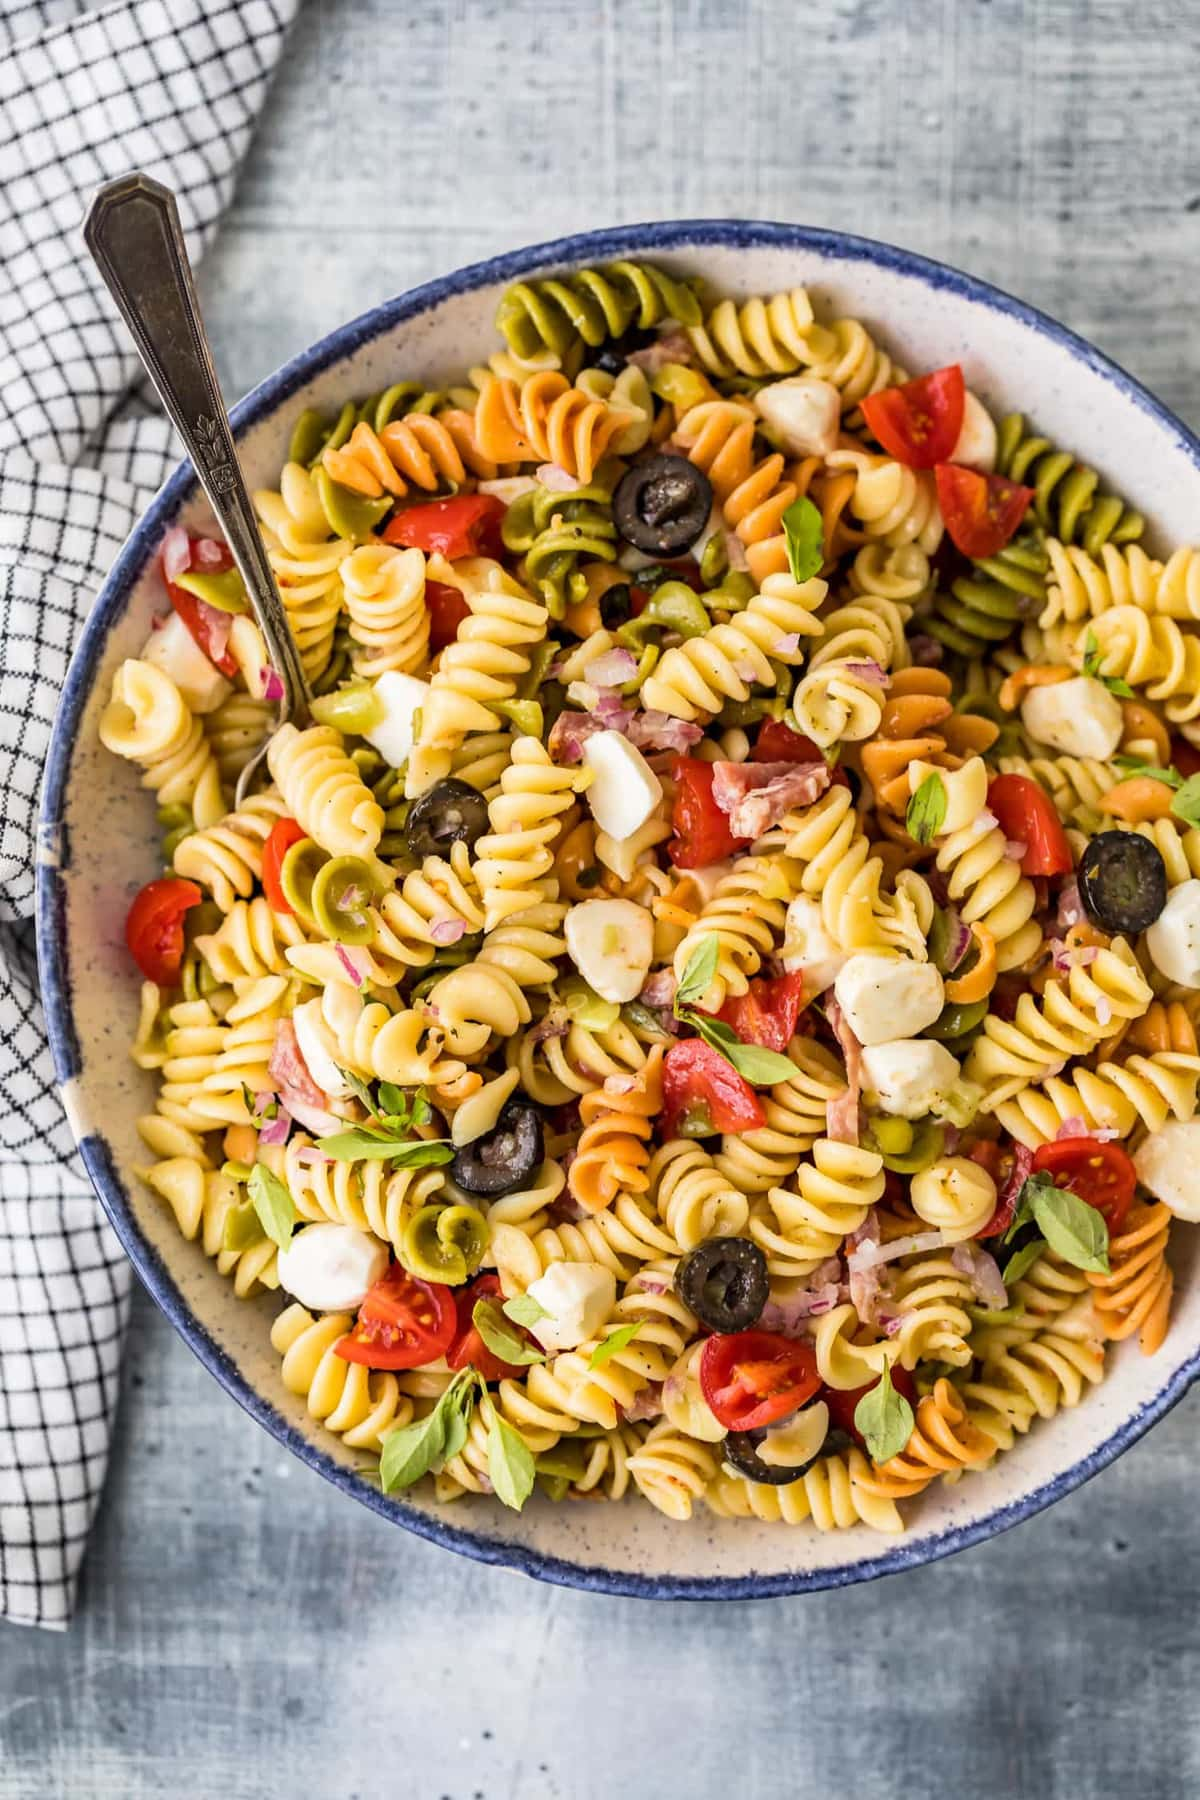 Top shot of Classic Italian Pasta Salad Recipe in a bowl